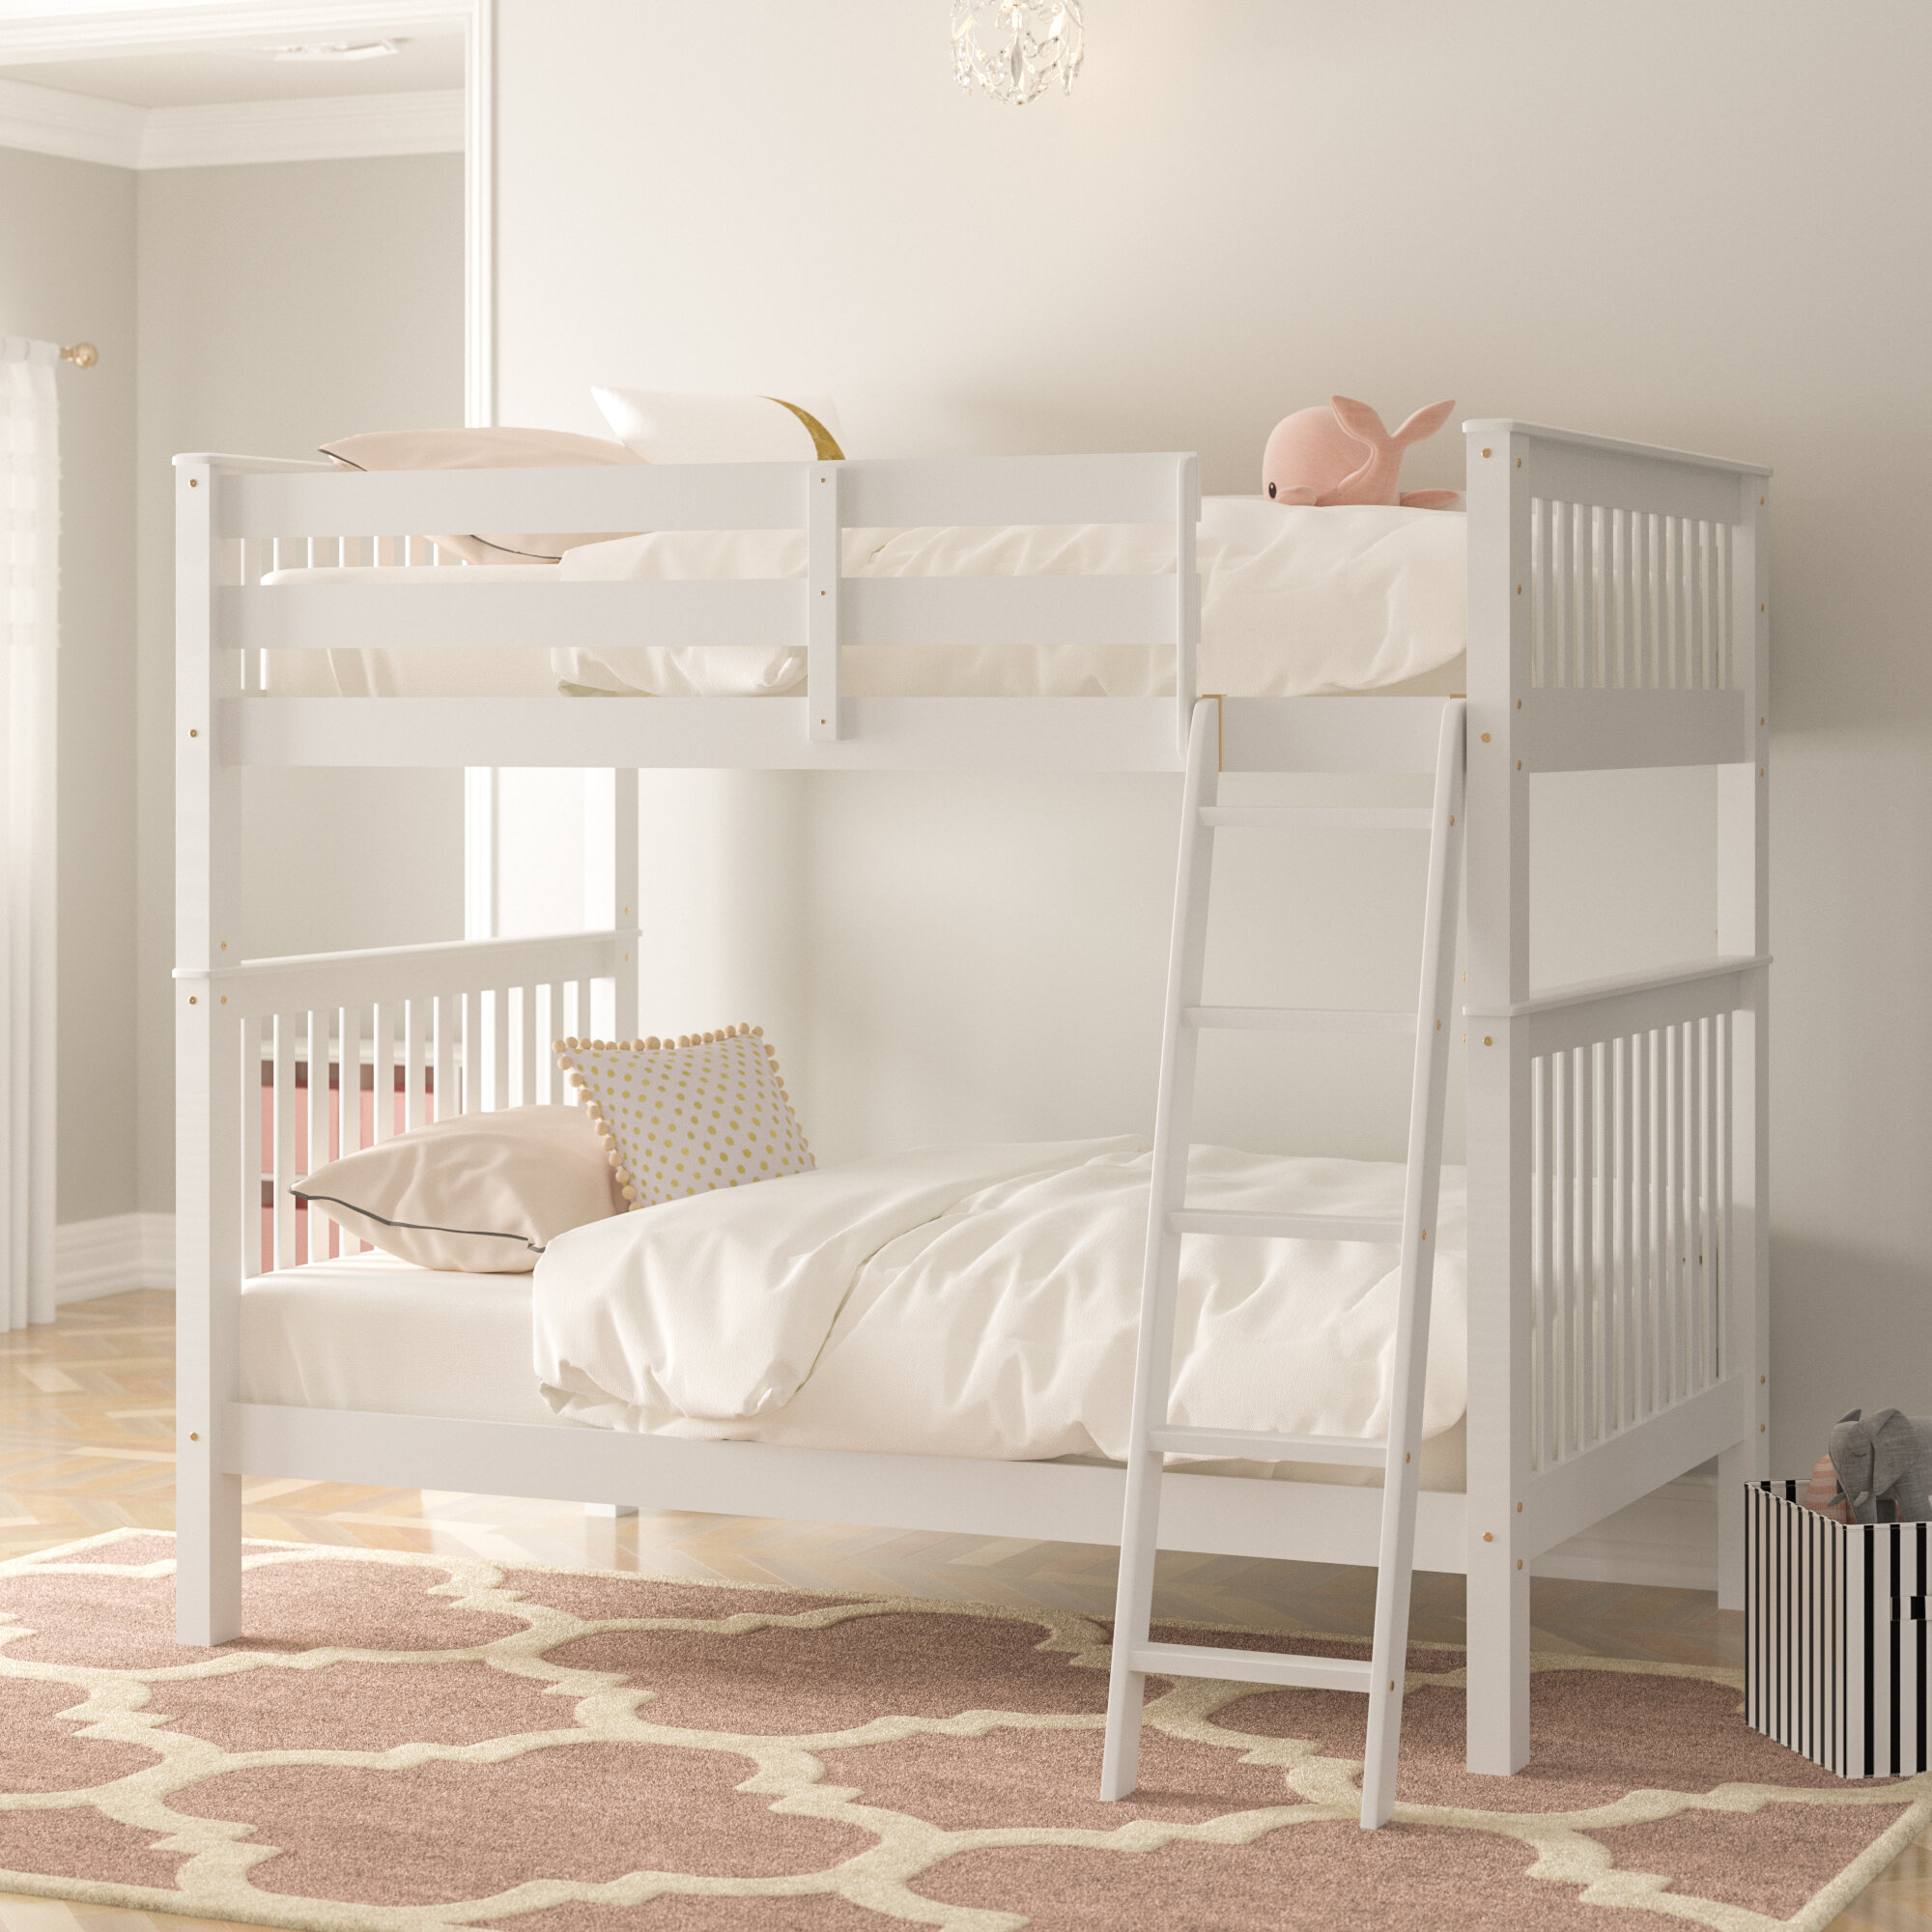 Just Kids Malvern Small Double Bunk Bed Reviews